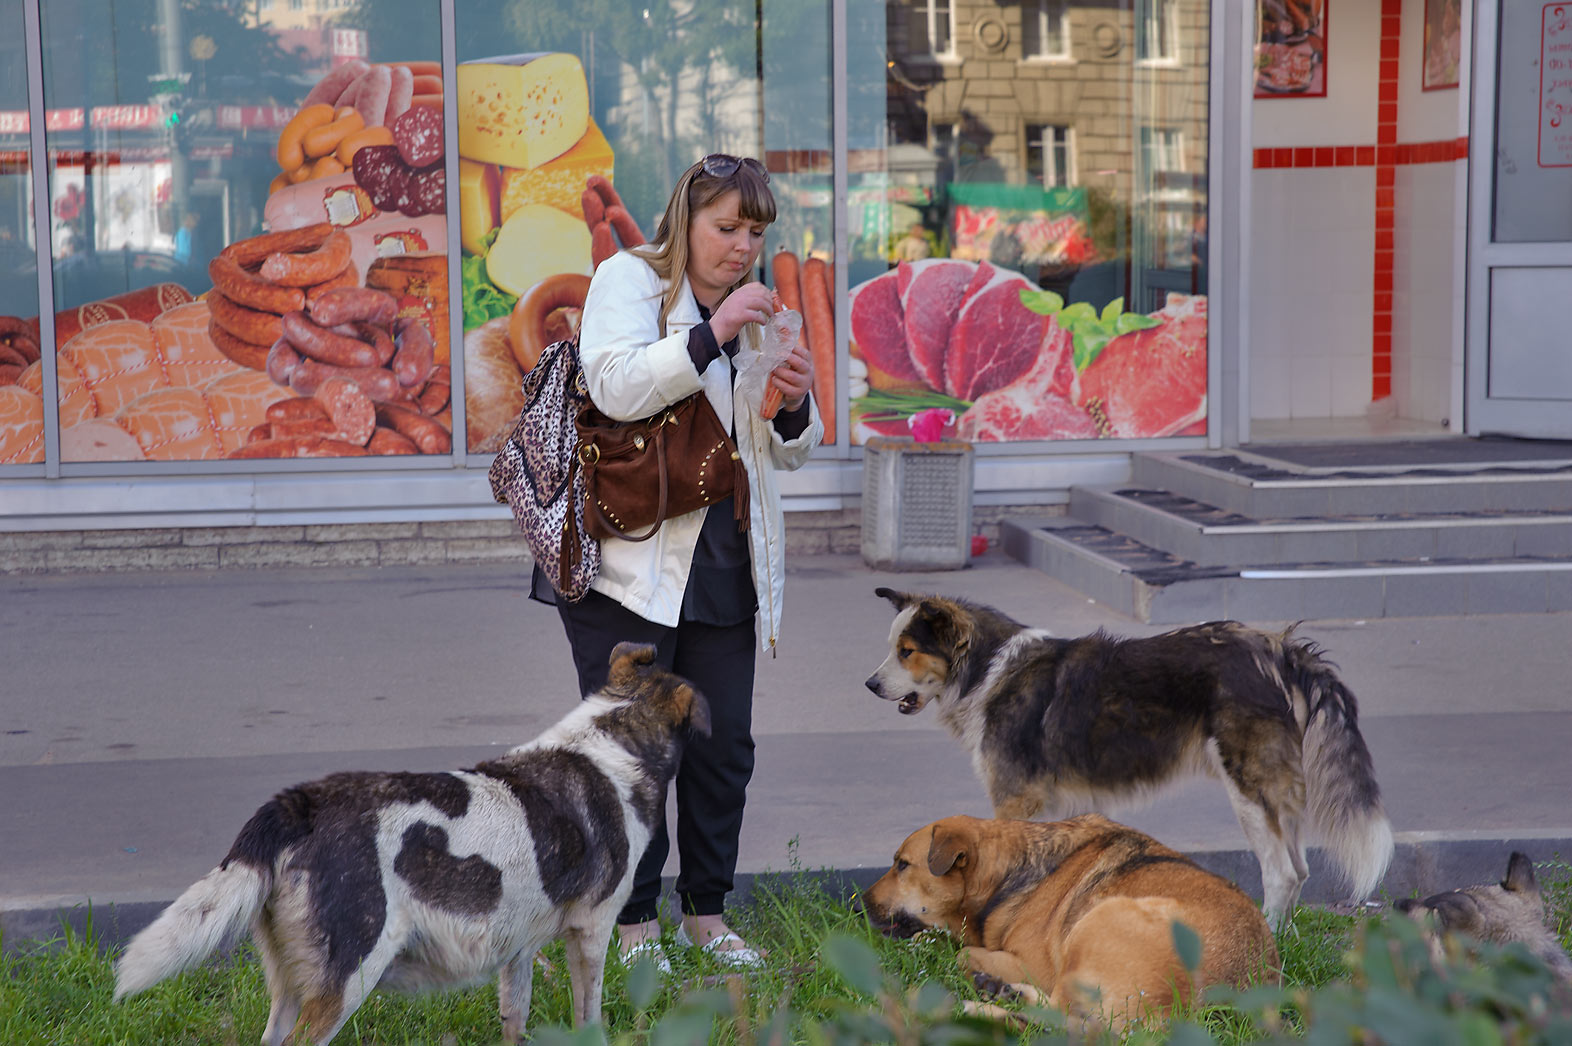 Feeding a pack of stray dogs by hot dogs near a...Square. St.Petersburg, Russia